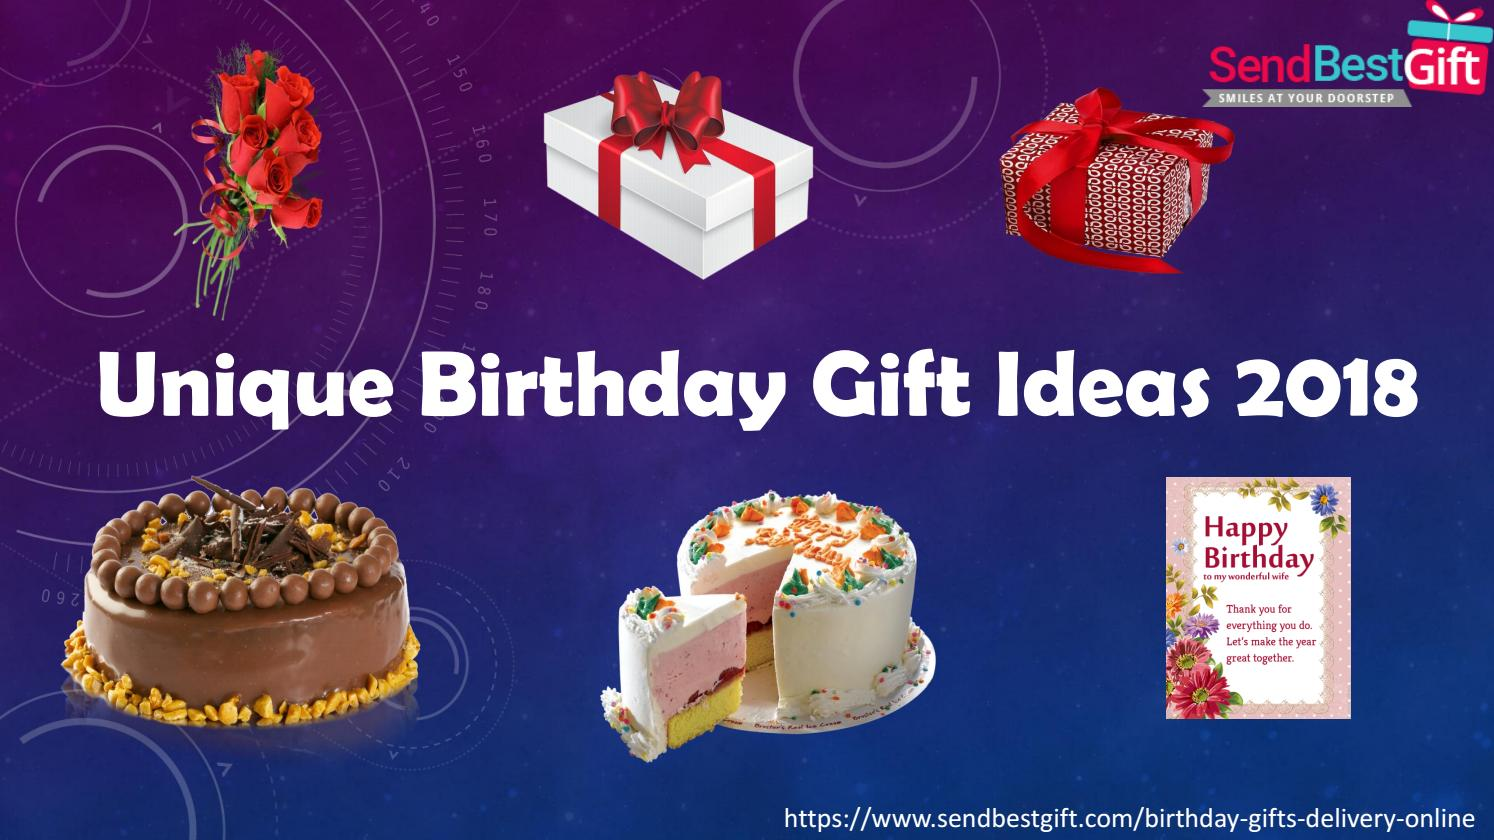 Unique Birthday Gift Ideas 2018 By Send Best